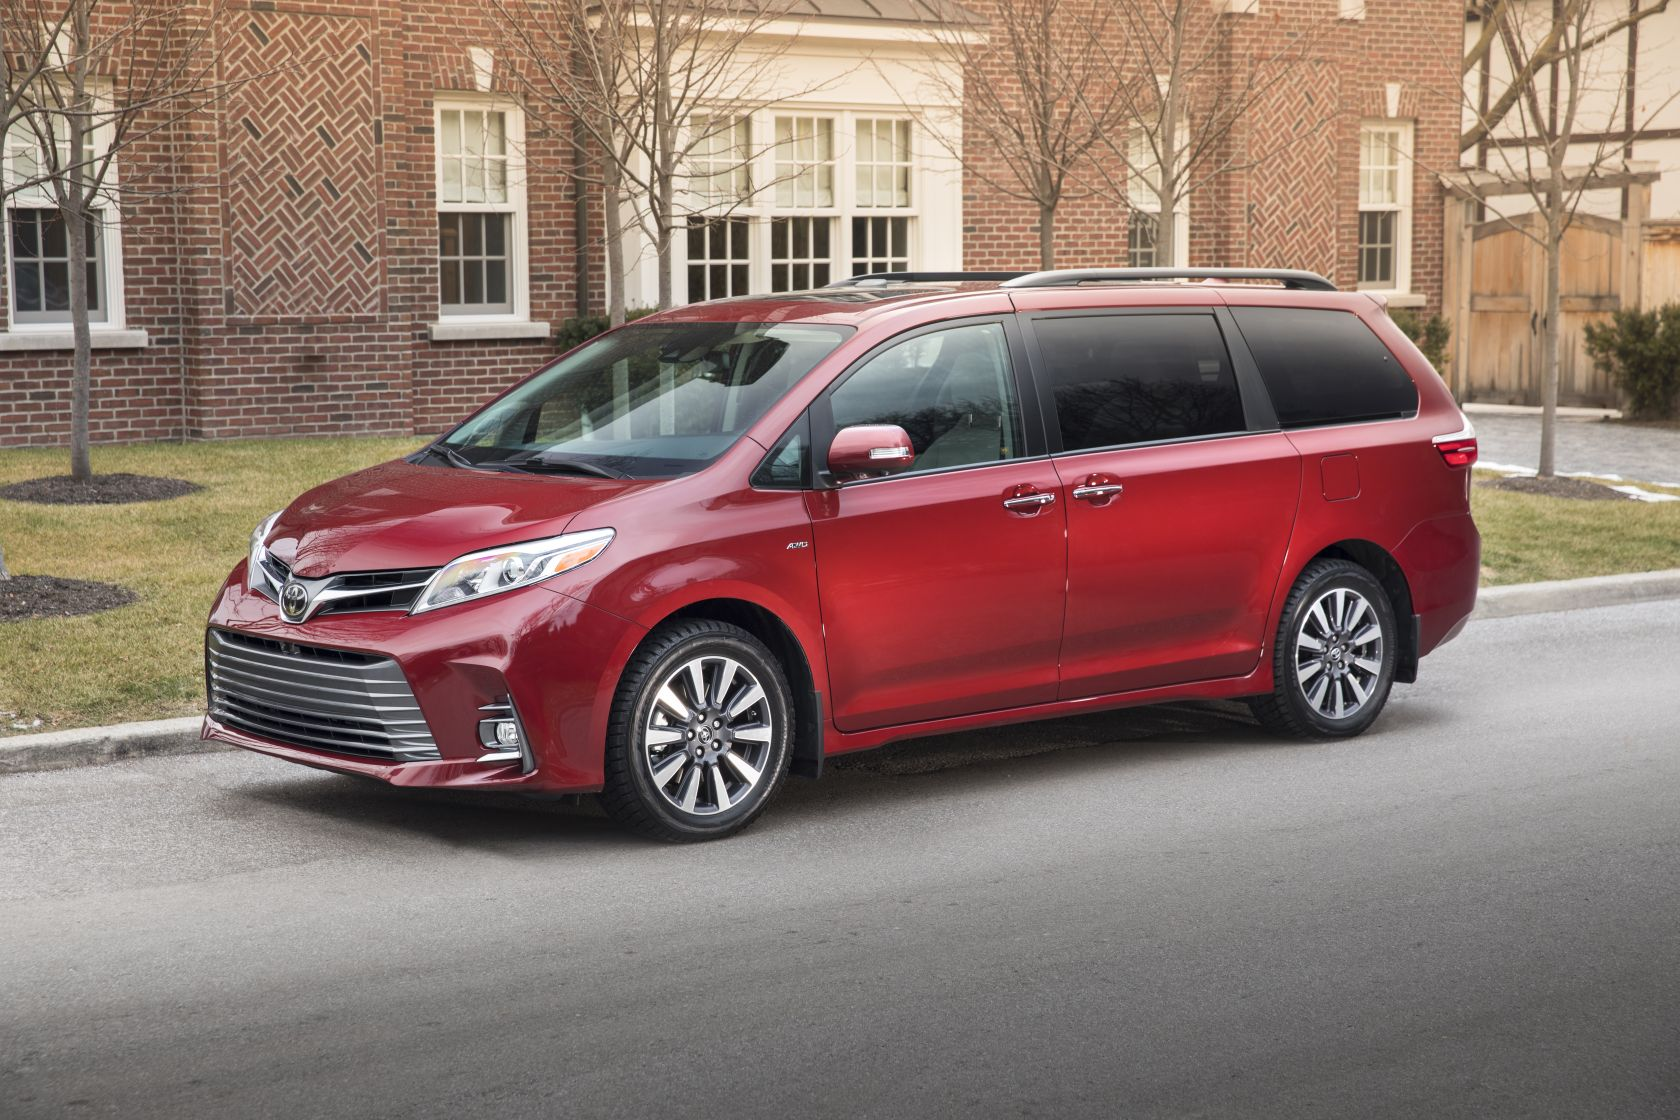 The Official Van Of Family Fun The Toyota Sienna